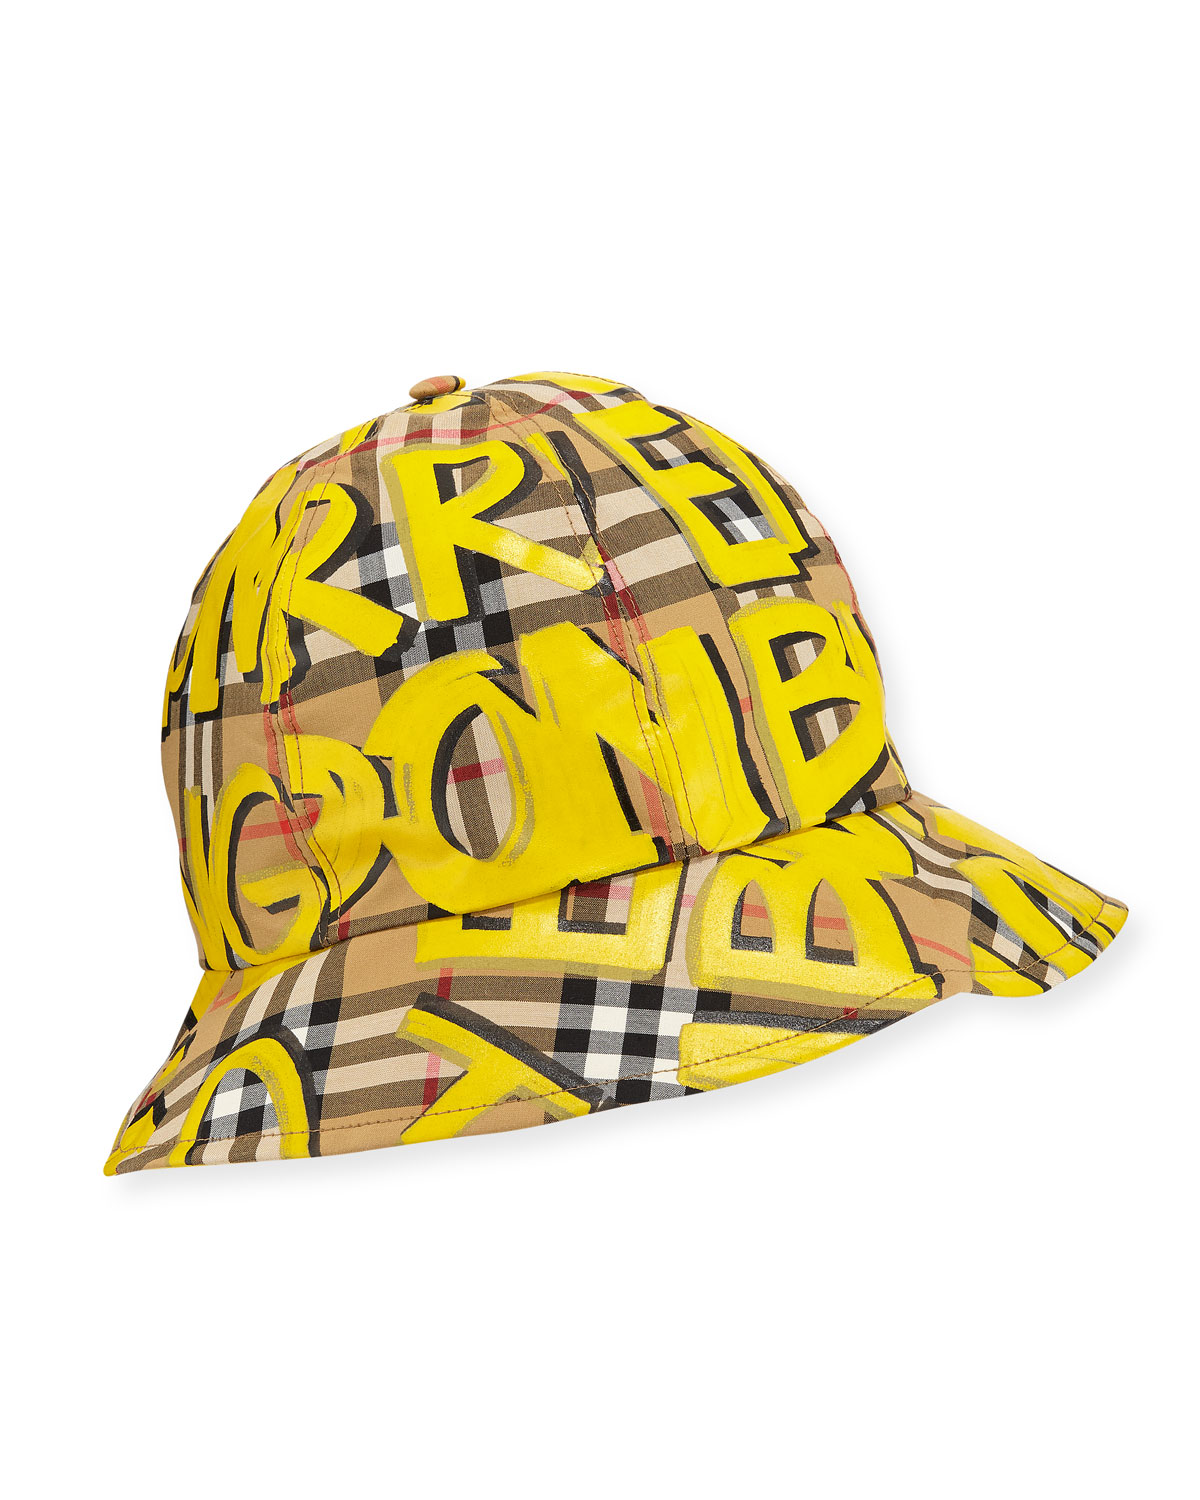 Burberry Men s Marker Graffiti Bucket Hat  707699c70d8